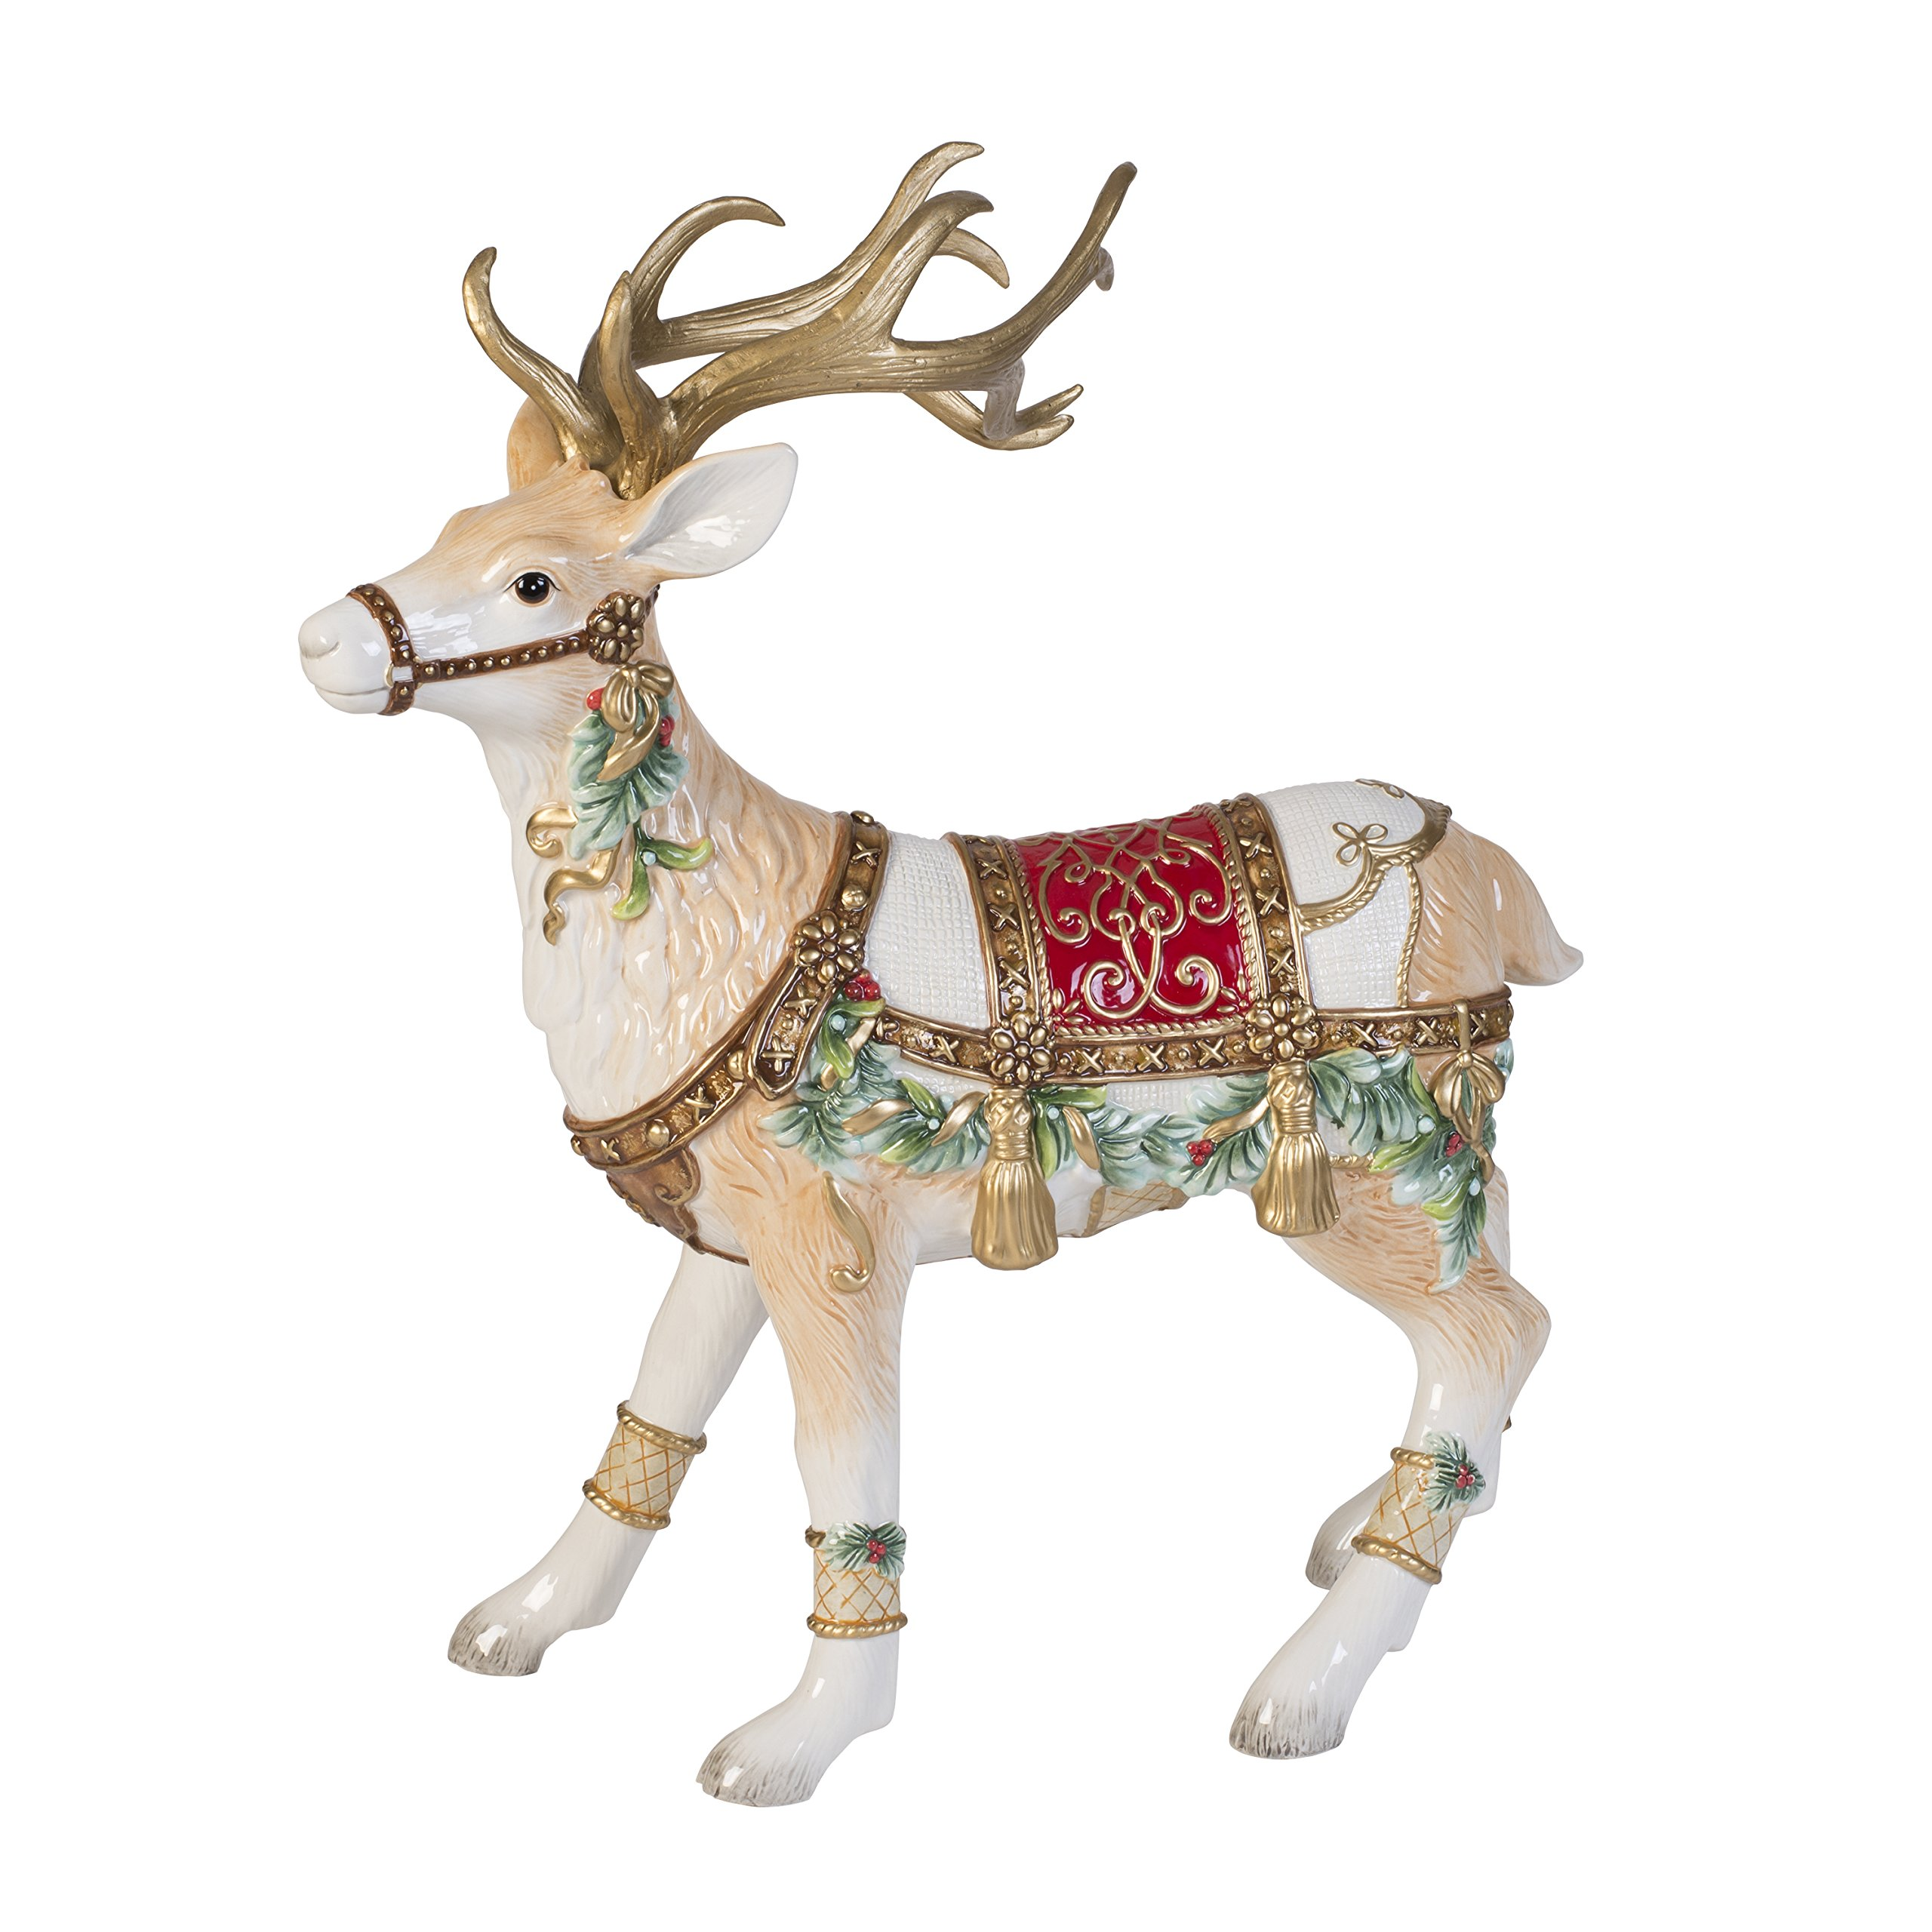 Fitz and Floyd Yuletide Holiday Collection Reindeer Figurine